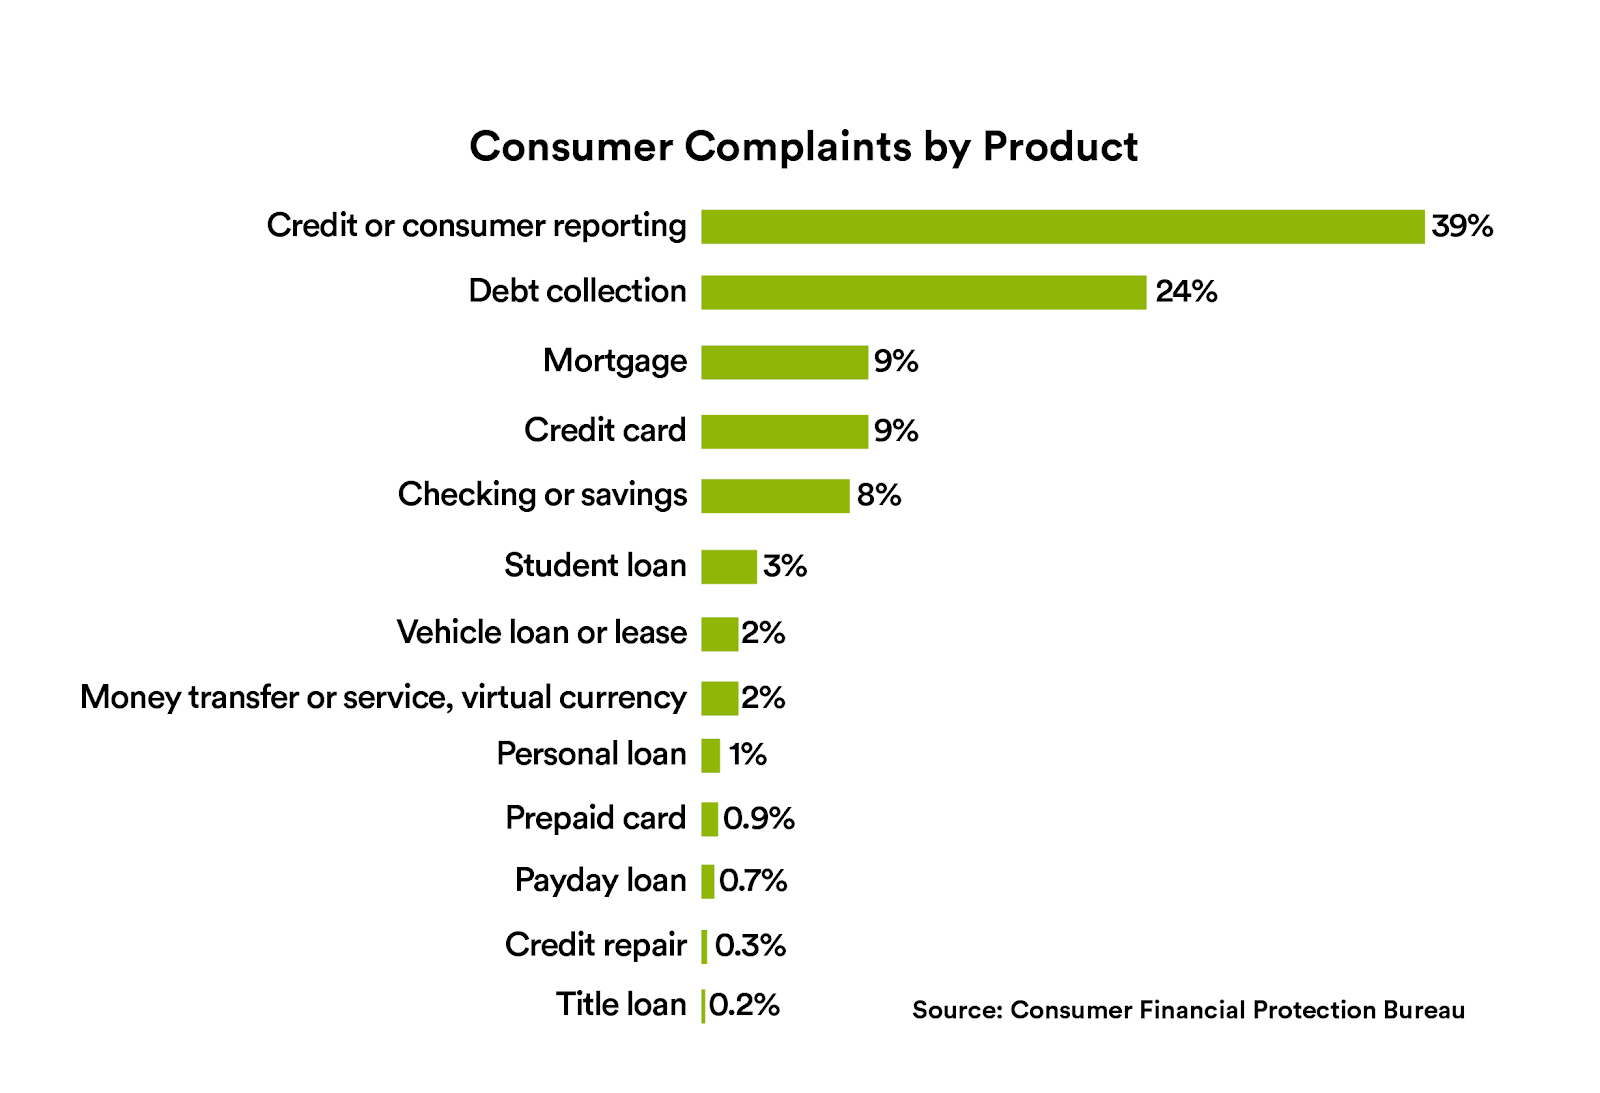 Consumer complaints by product